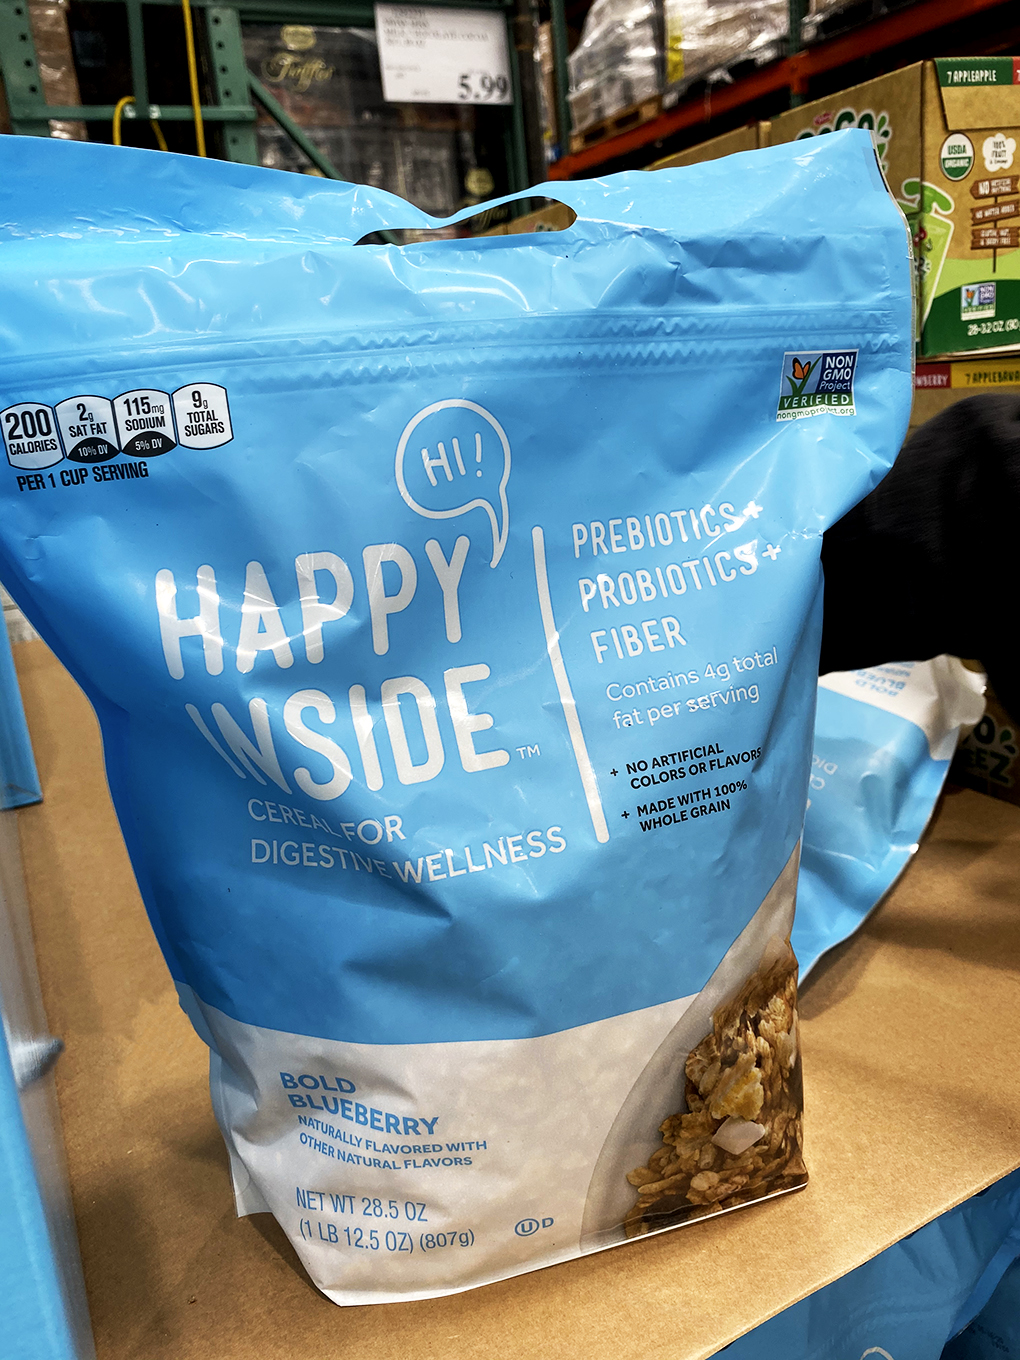 Packaged Foods for Digestive Wellness Get Happy Inside agutsygirl.com #digest #guthealth #cereal #healthyliving